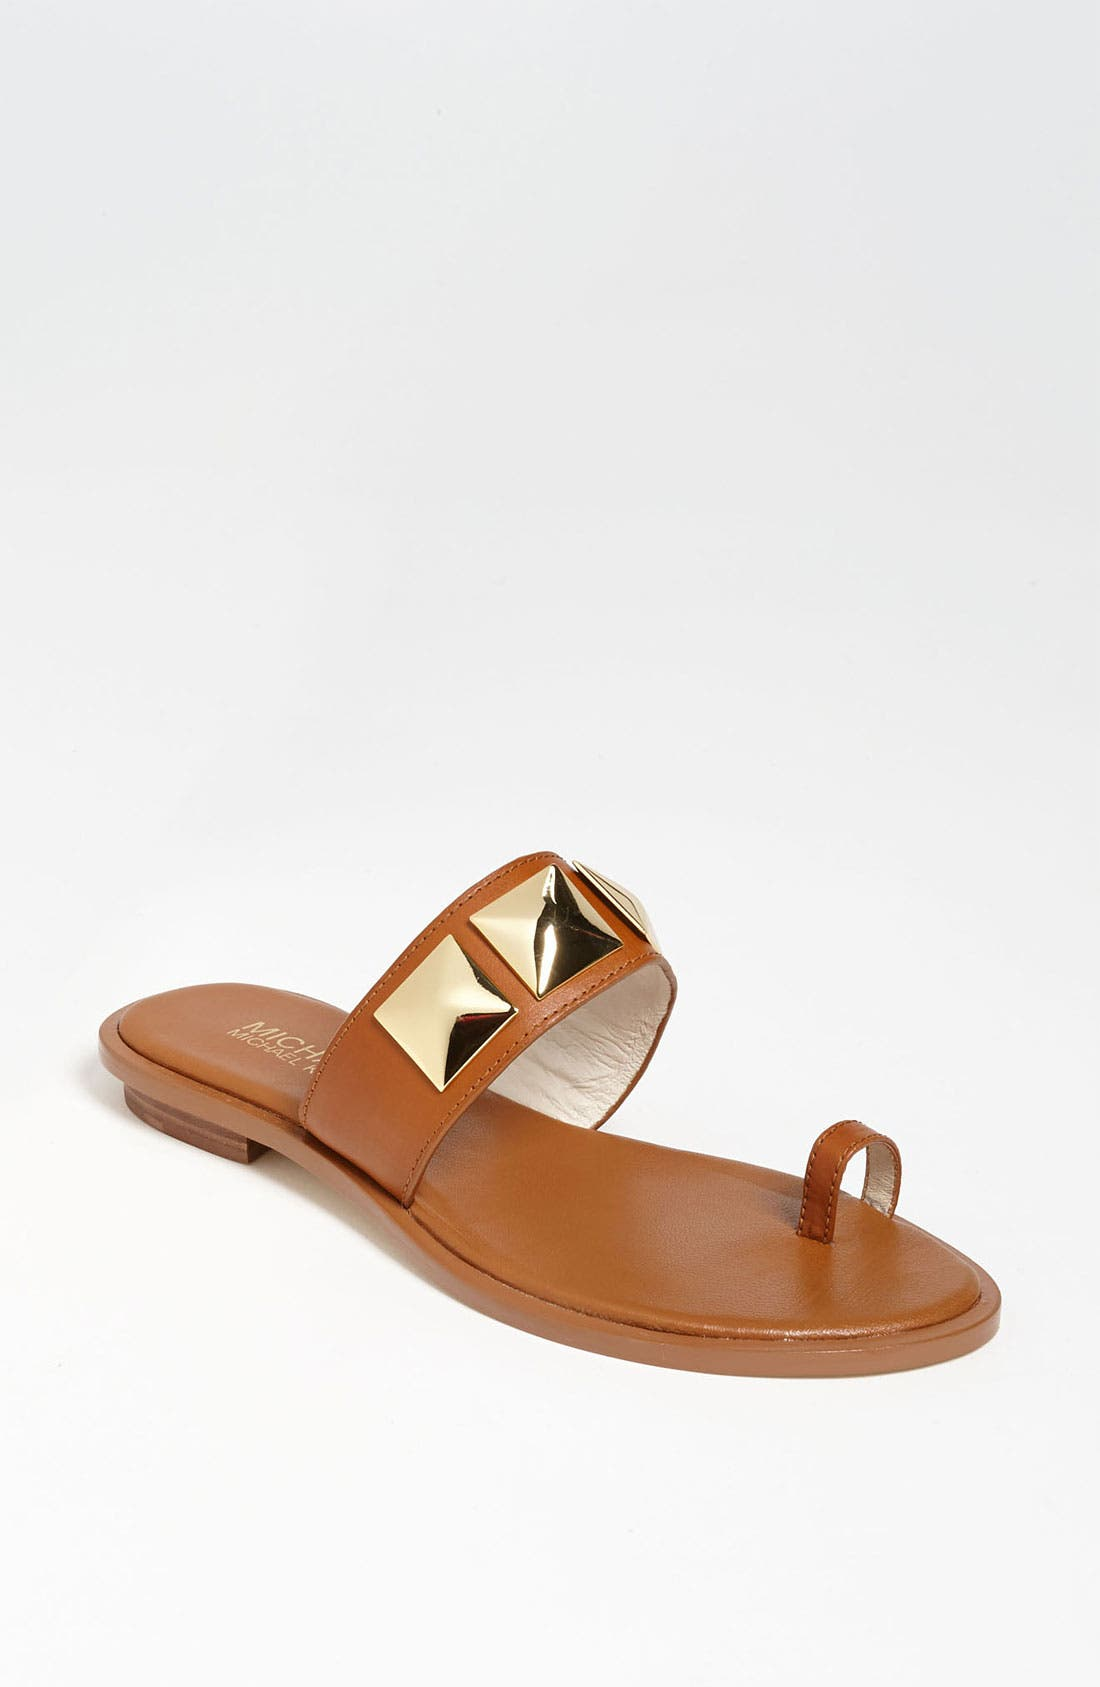 Alternate Image 1 Selected - MICHAEL Michael Kors 'Persia' Sandal